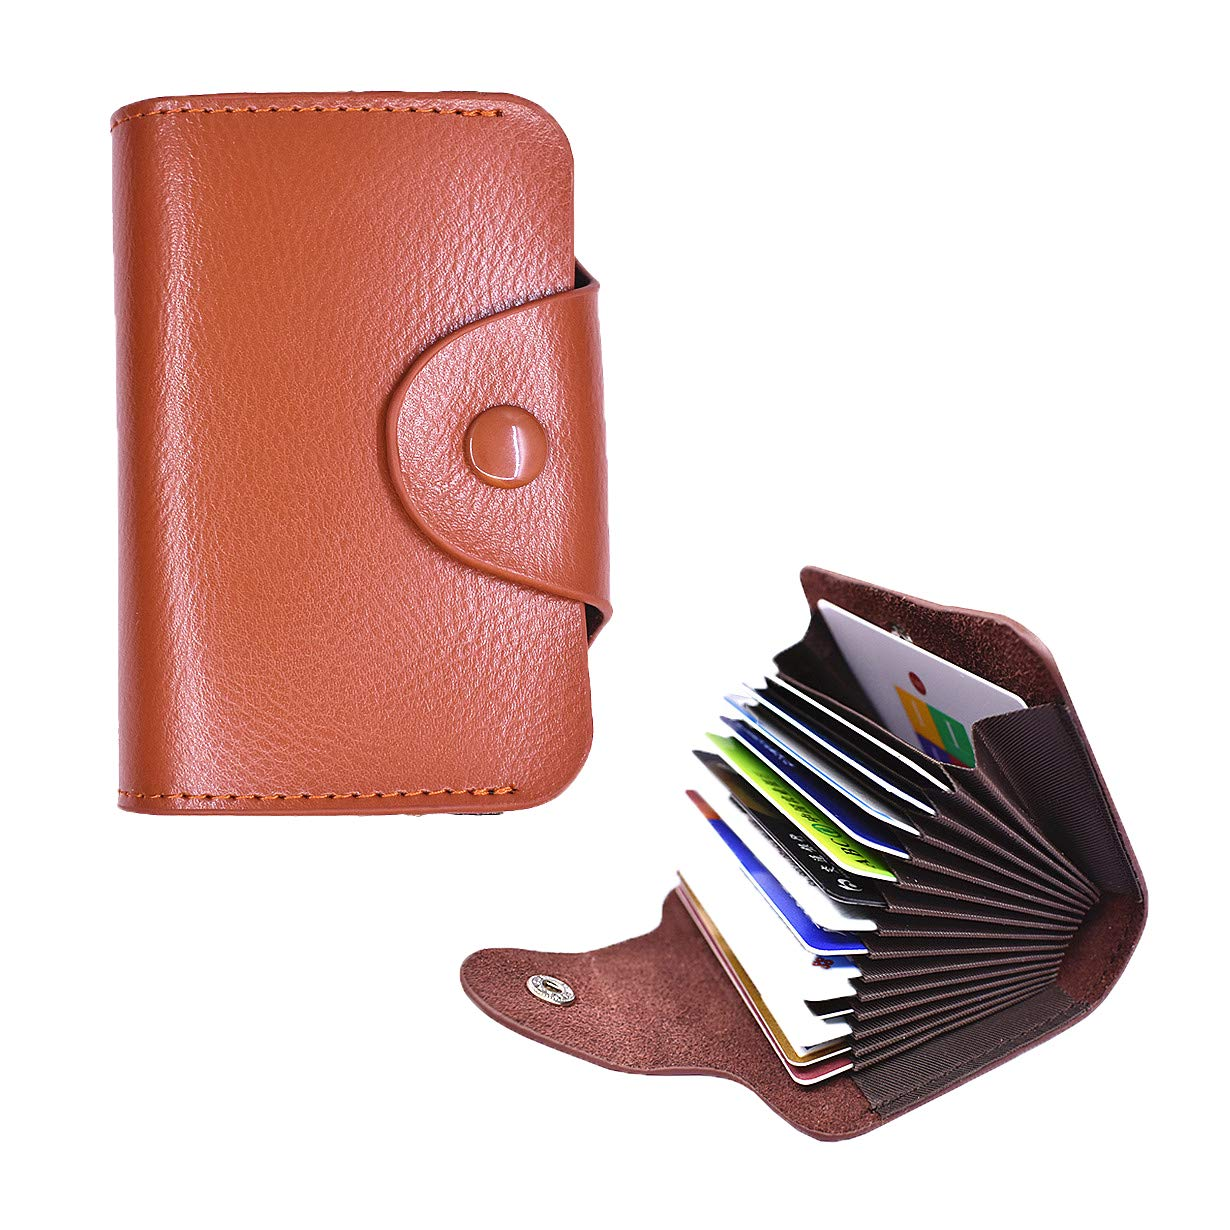 Laimi Duo Unisex Slim Thin Wallet Leather RFID Security